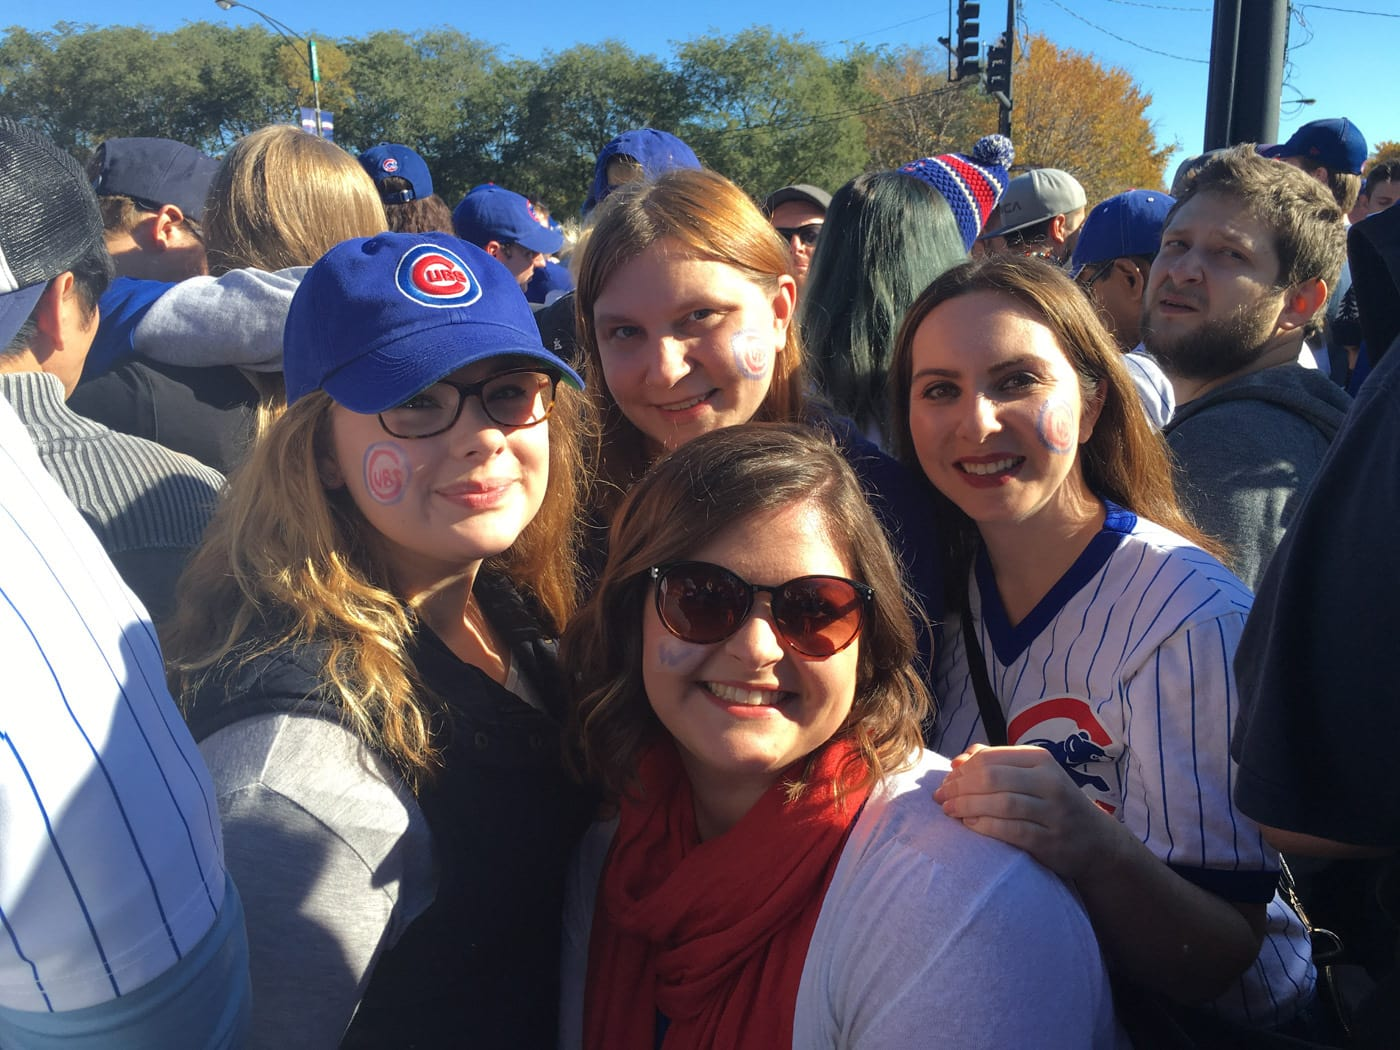 My friends and I at the Cubs victory parade.